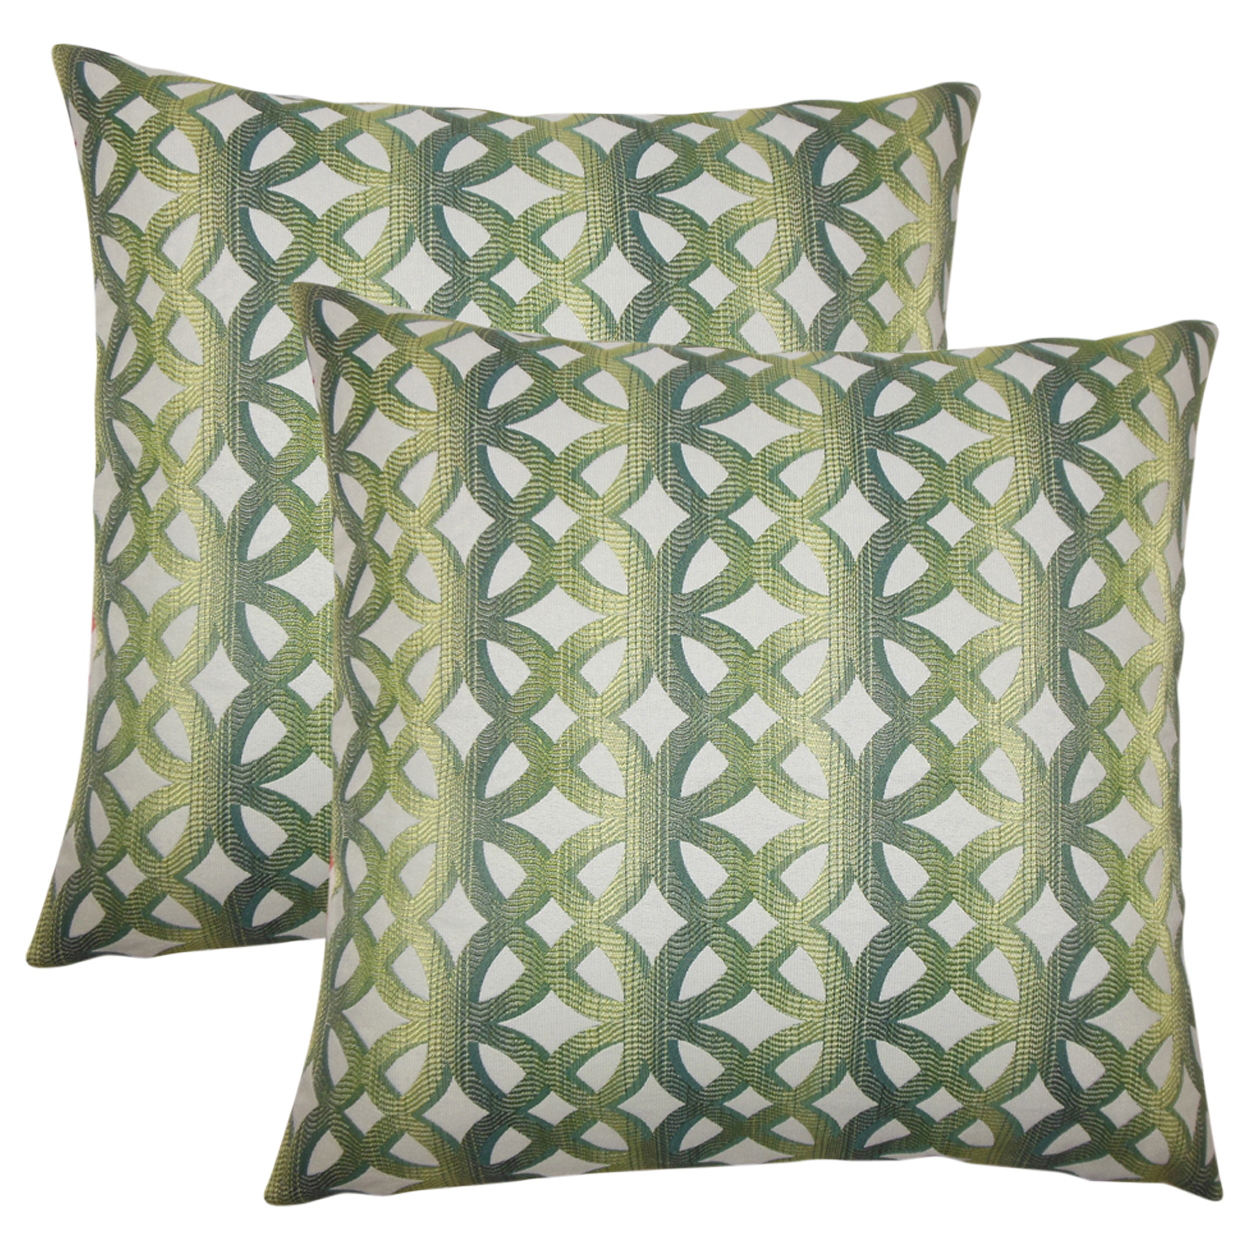 Set of 2 Heulwen Geometric Throw Pillows in Jade